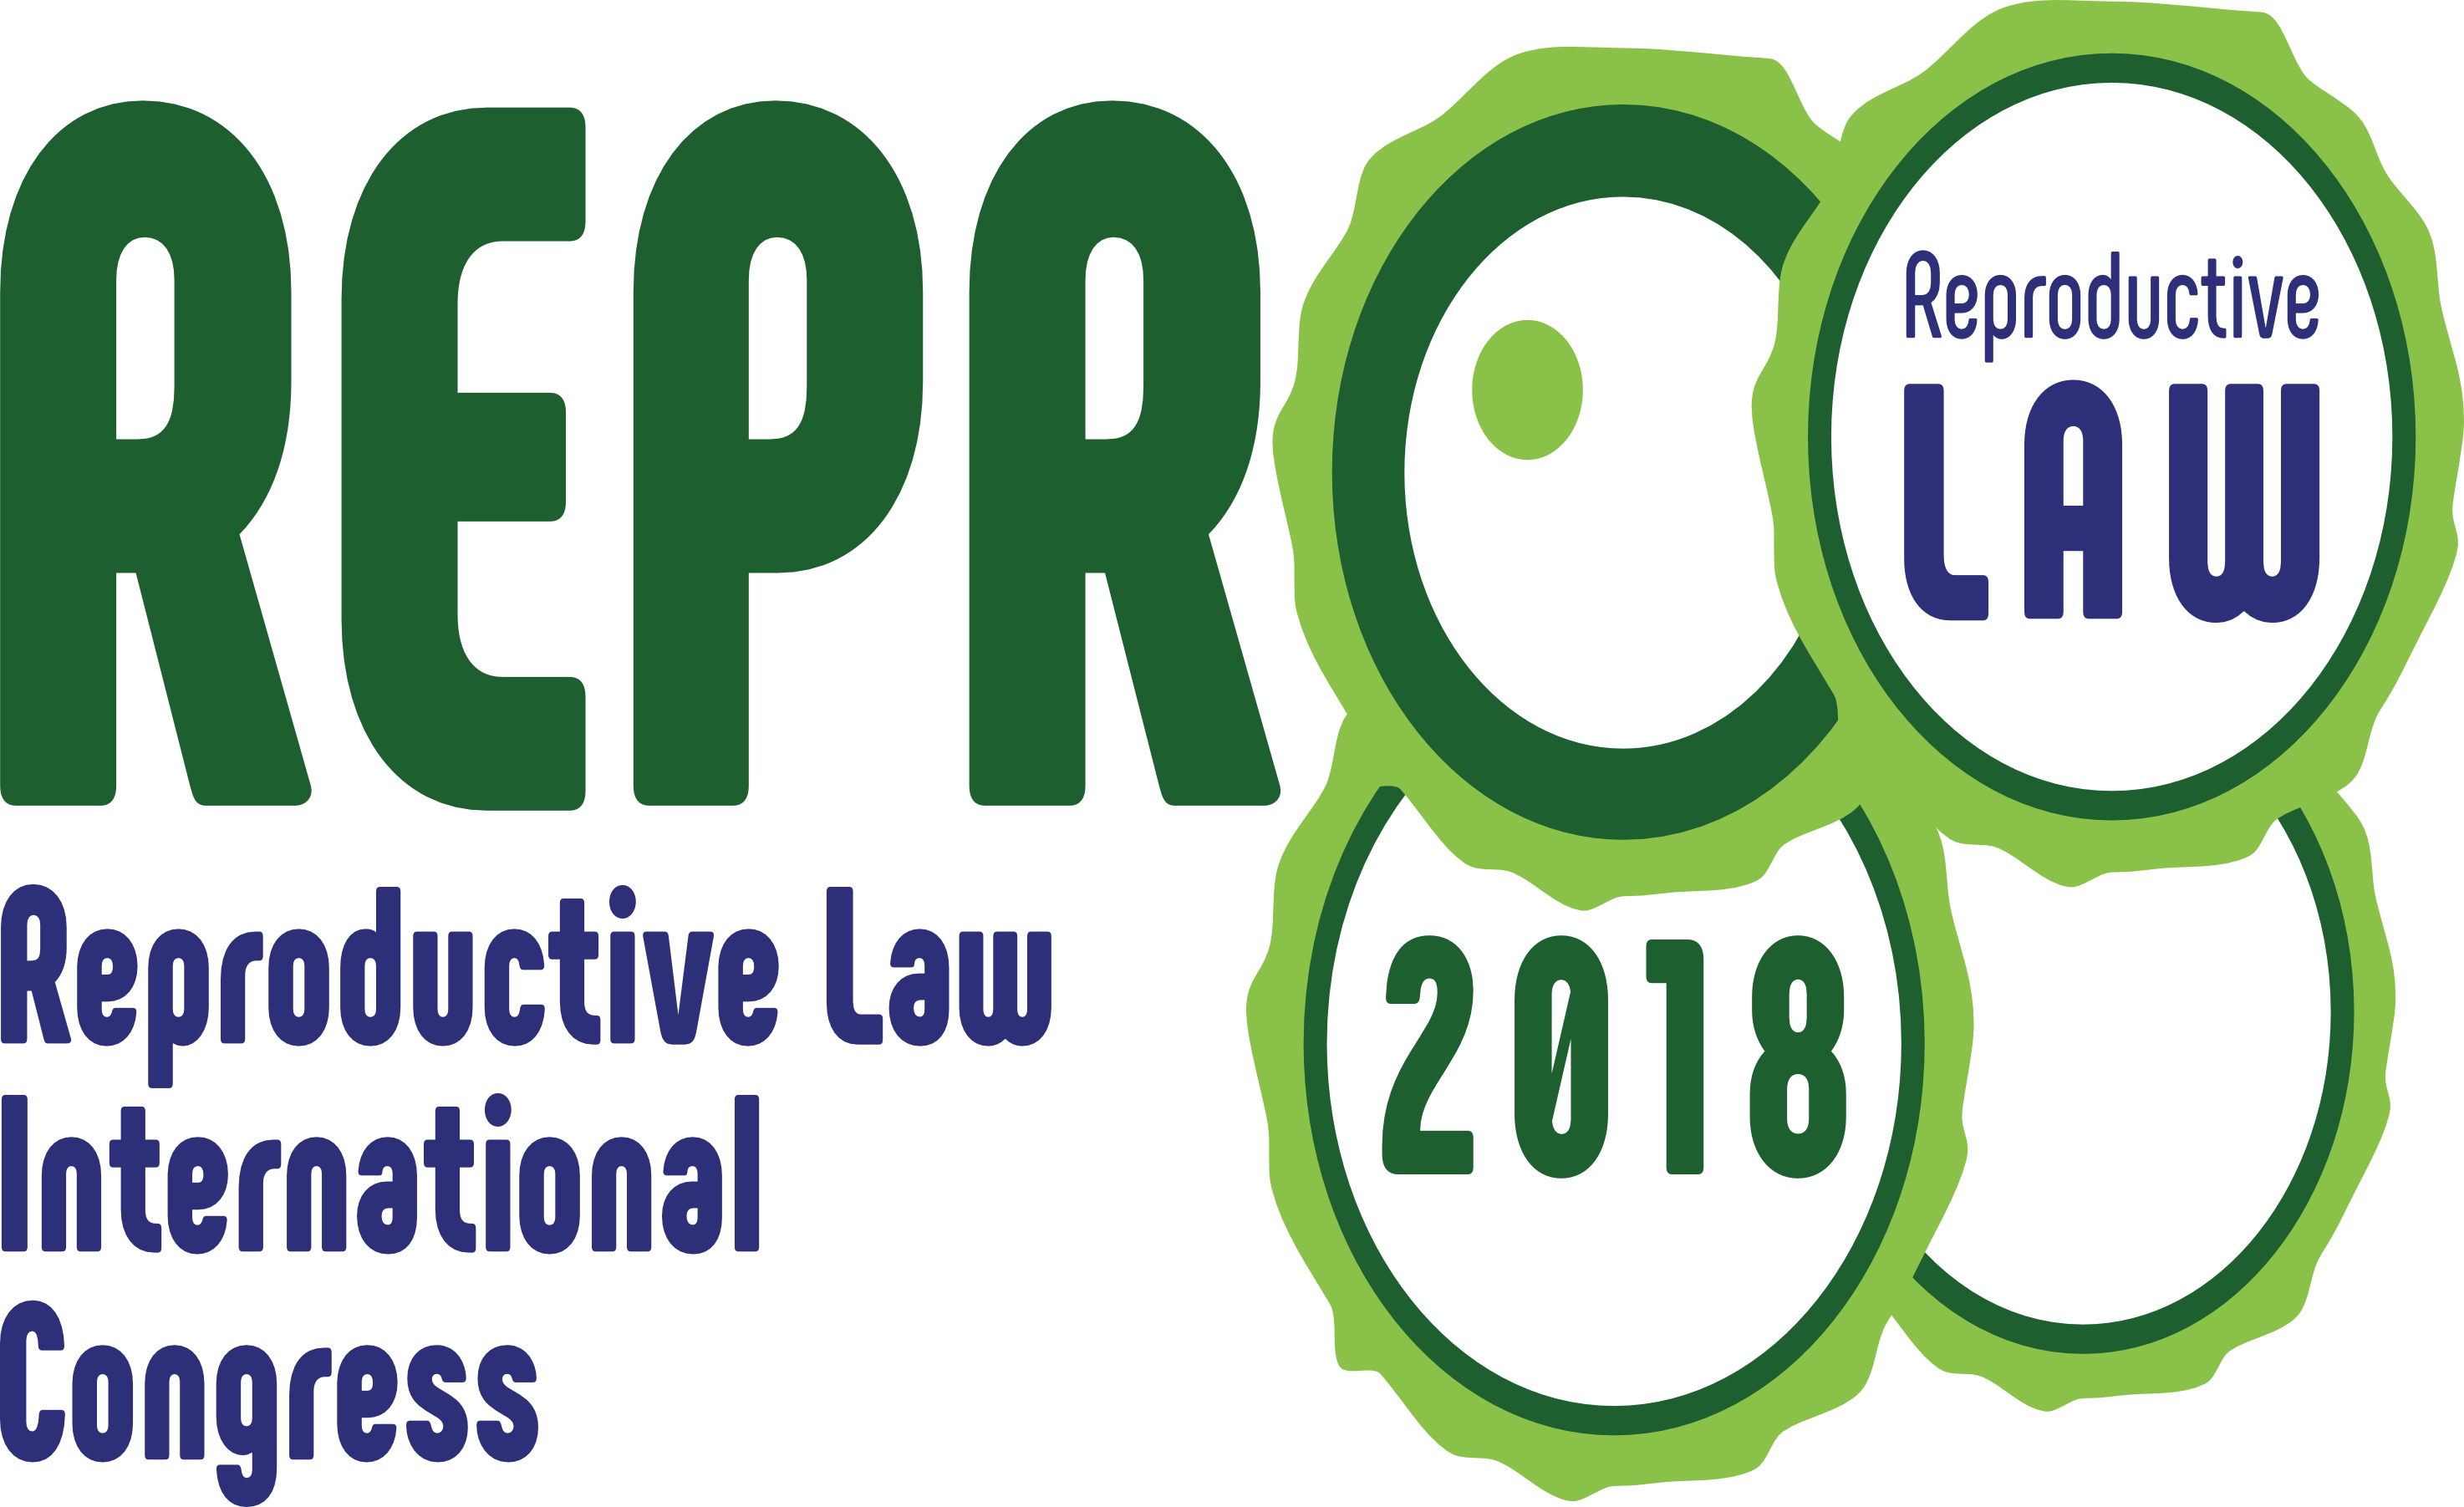 Reproductive Law Congress